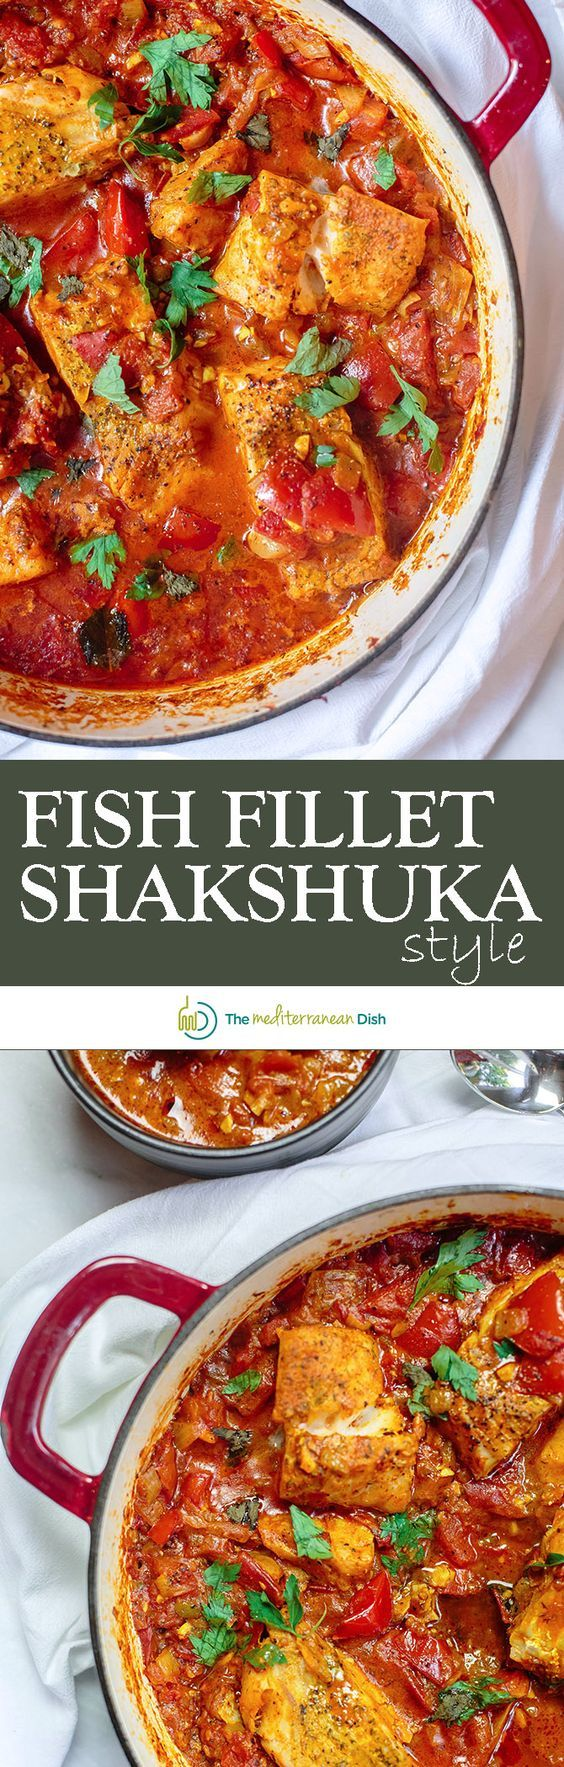 Mediterranean Fish Fillet Recipe Shakshuka Style | The Mediterranean Dish. A quick one-skillet cod fish fillet, flavored with Mediterranean spices and cooked in a bed of tomato sauce with onions, garlic and spicy Jalapeno peppers. Comes together in 30 mins or so. Step-by-step on TheMediterraneanDish.com